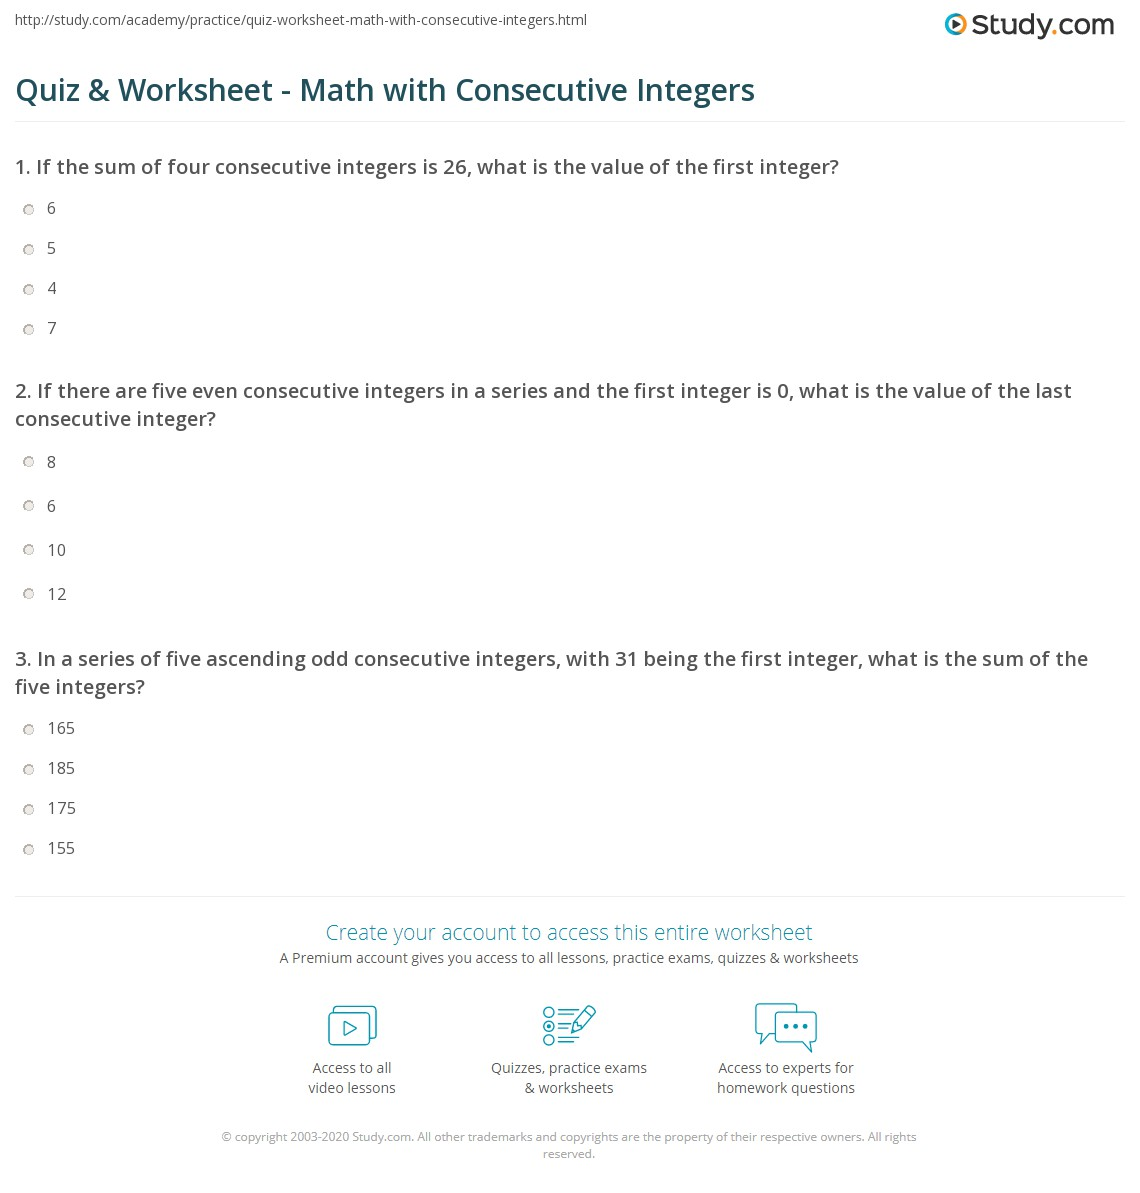 Free Worksheet Consecutive Integers Worksheet how to solve integer word problems coursework www docstoc com